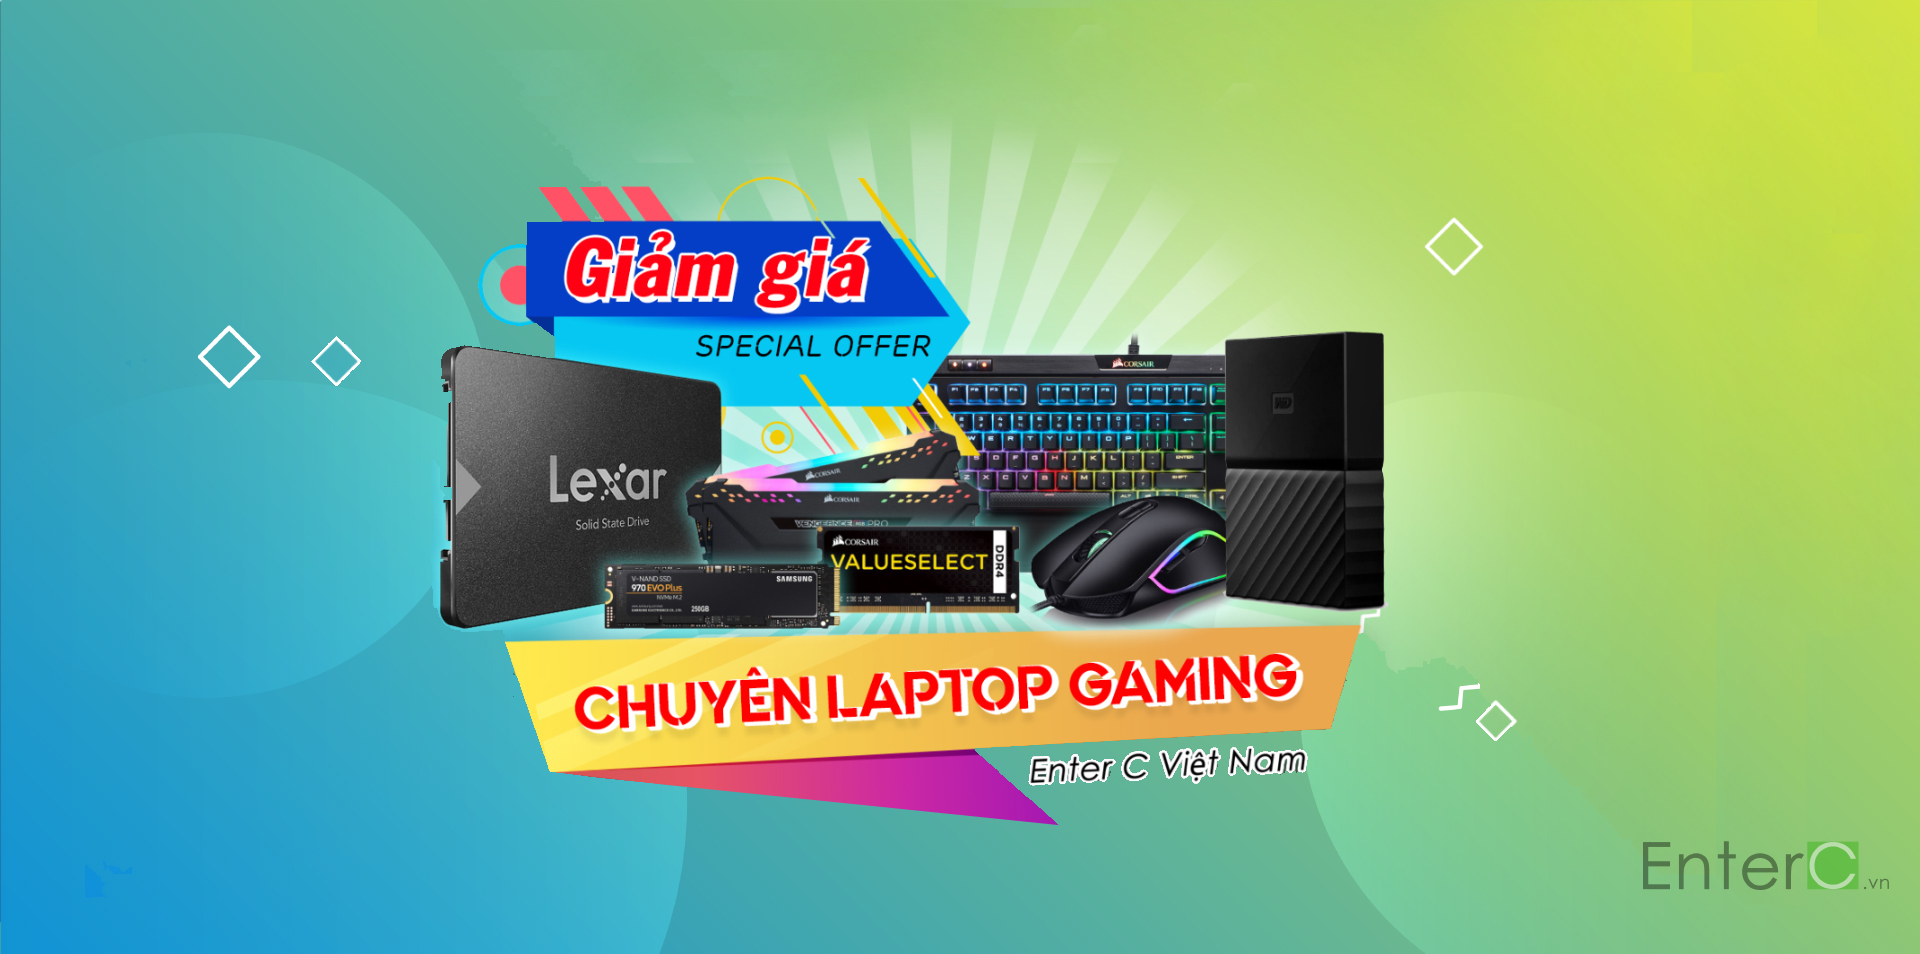 Enter C Việt Nam Baner gaming 2